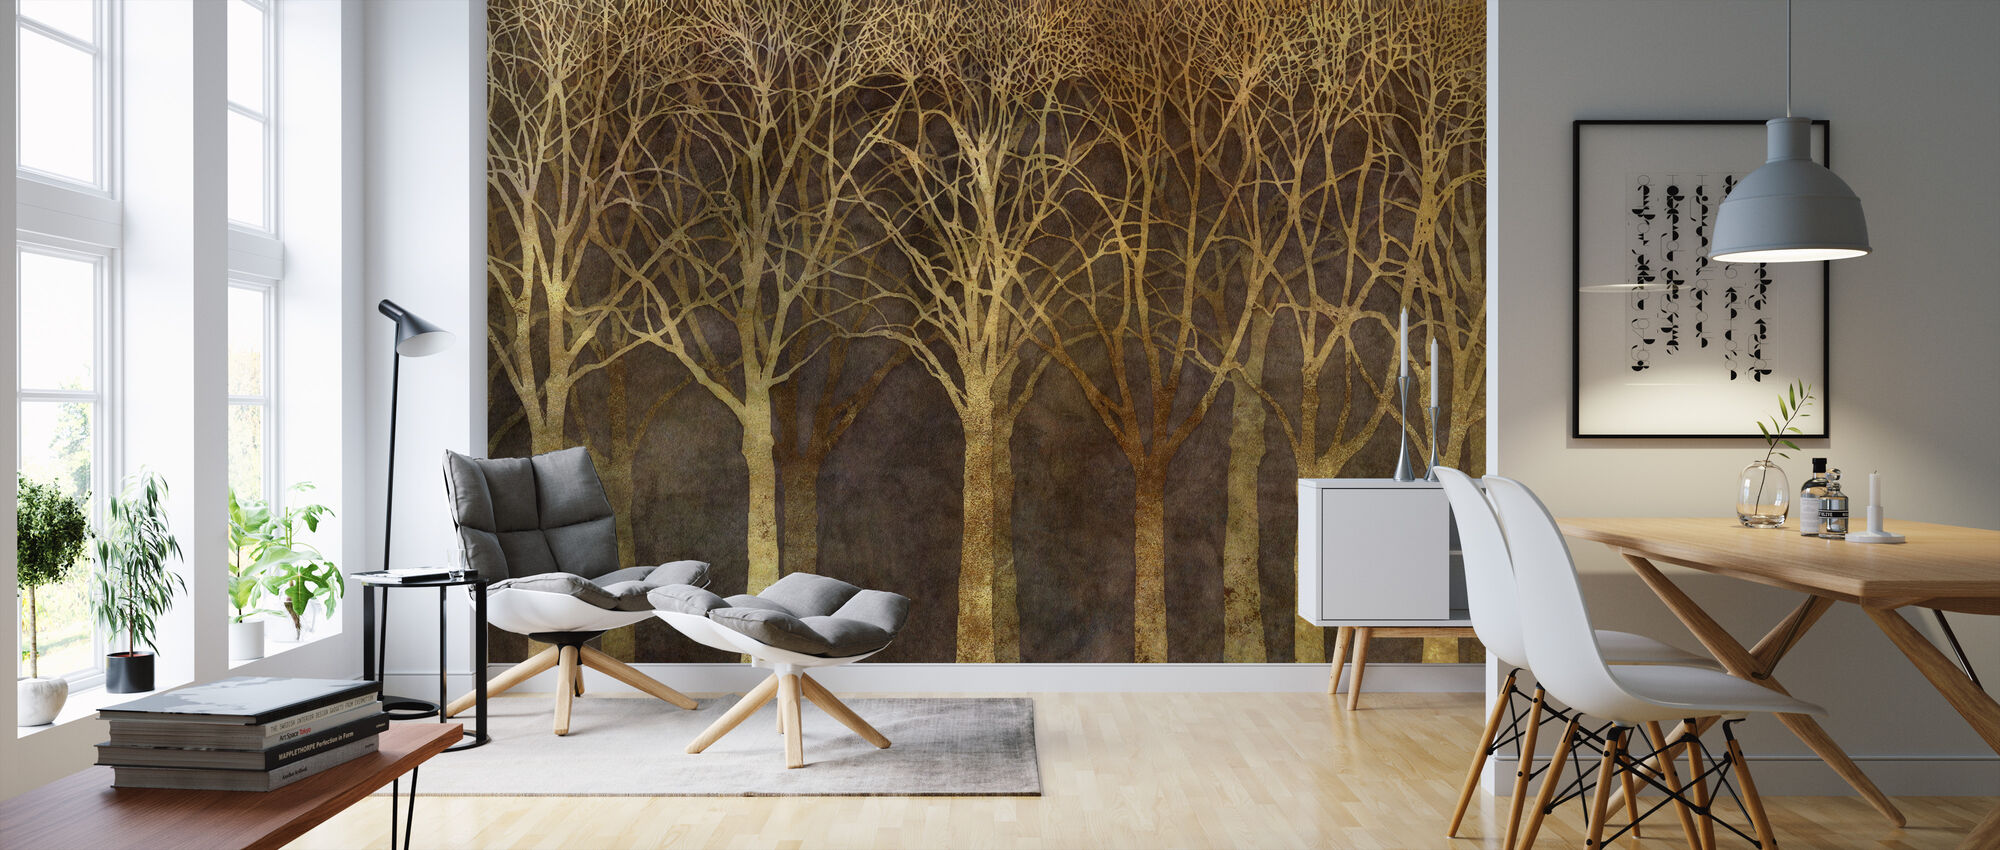 Birch Grove Night Sepia - Wallpaper - Living Room